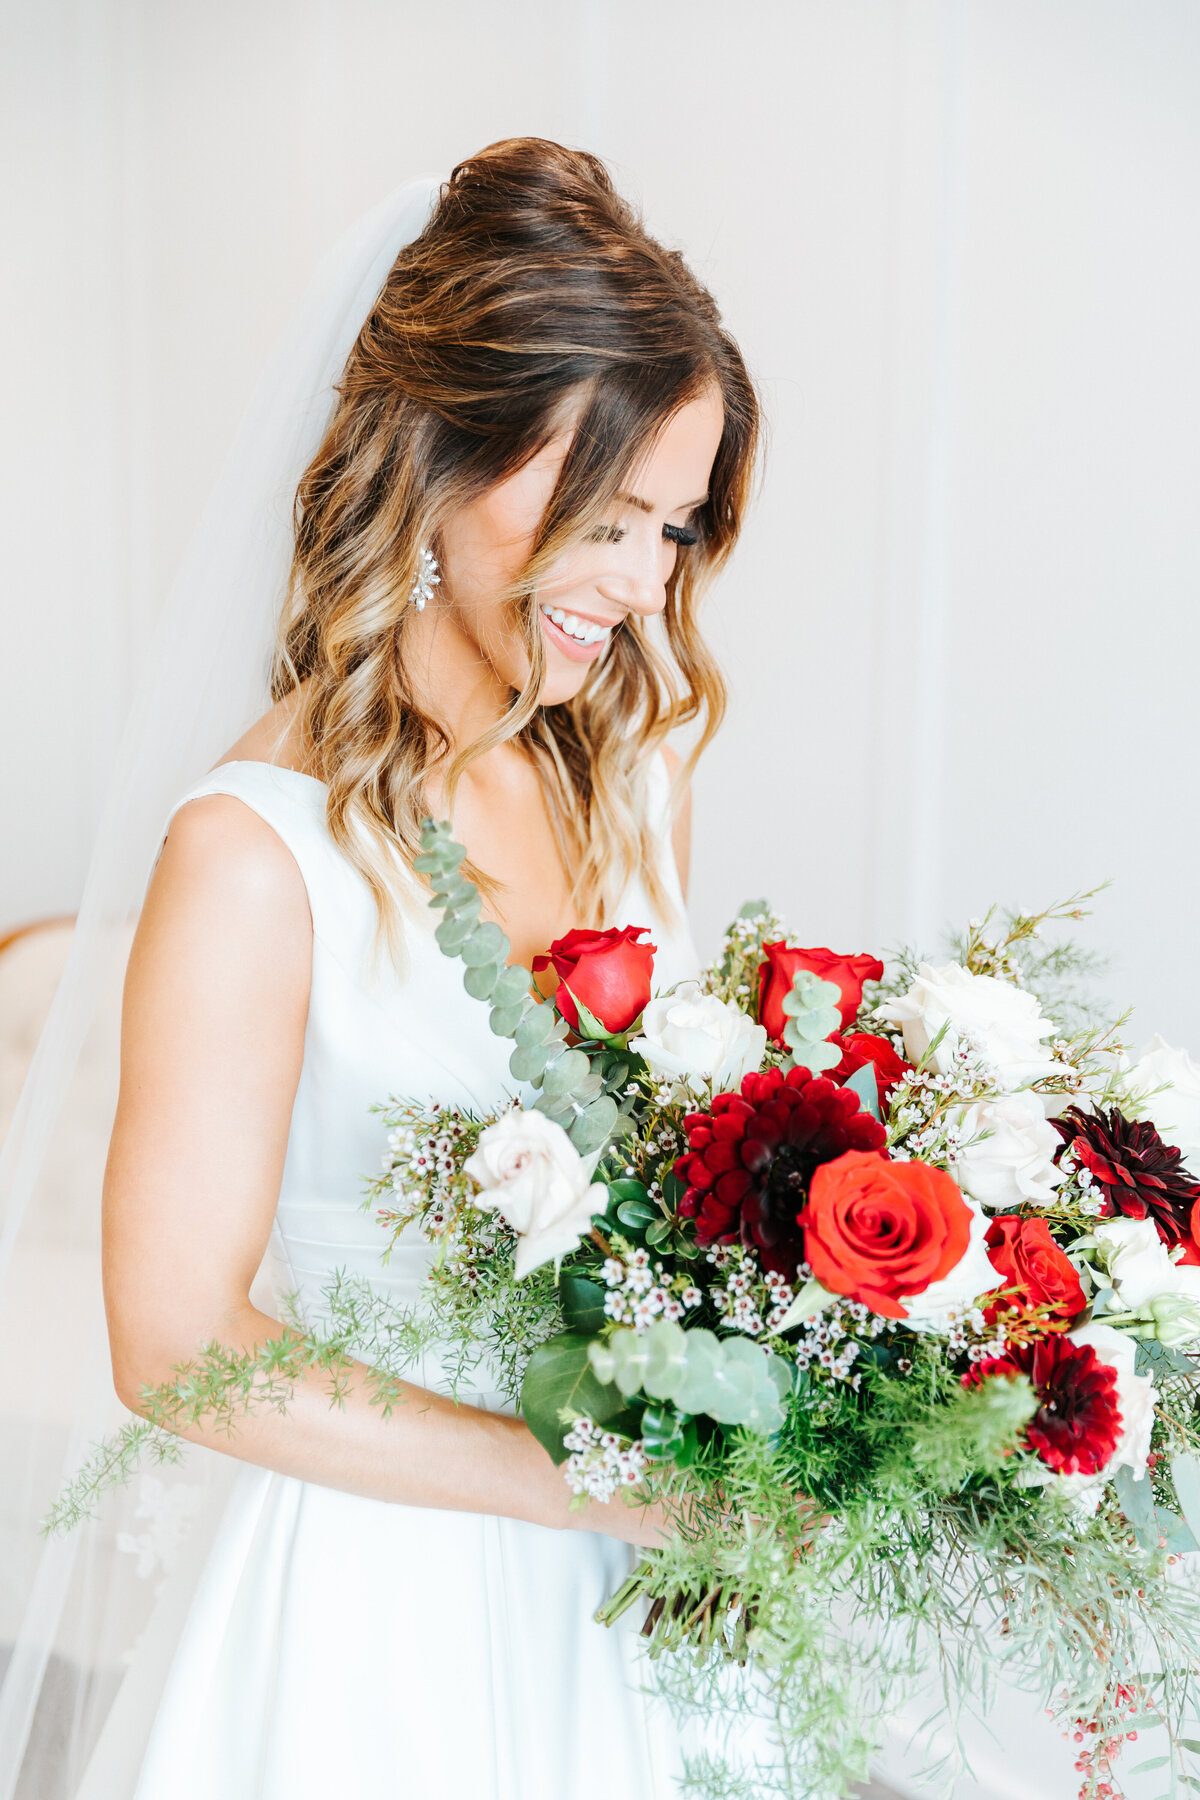 Bride with Red Bouquet on her Wedding Day